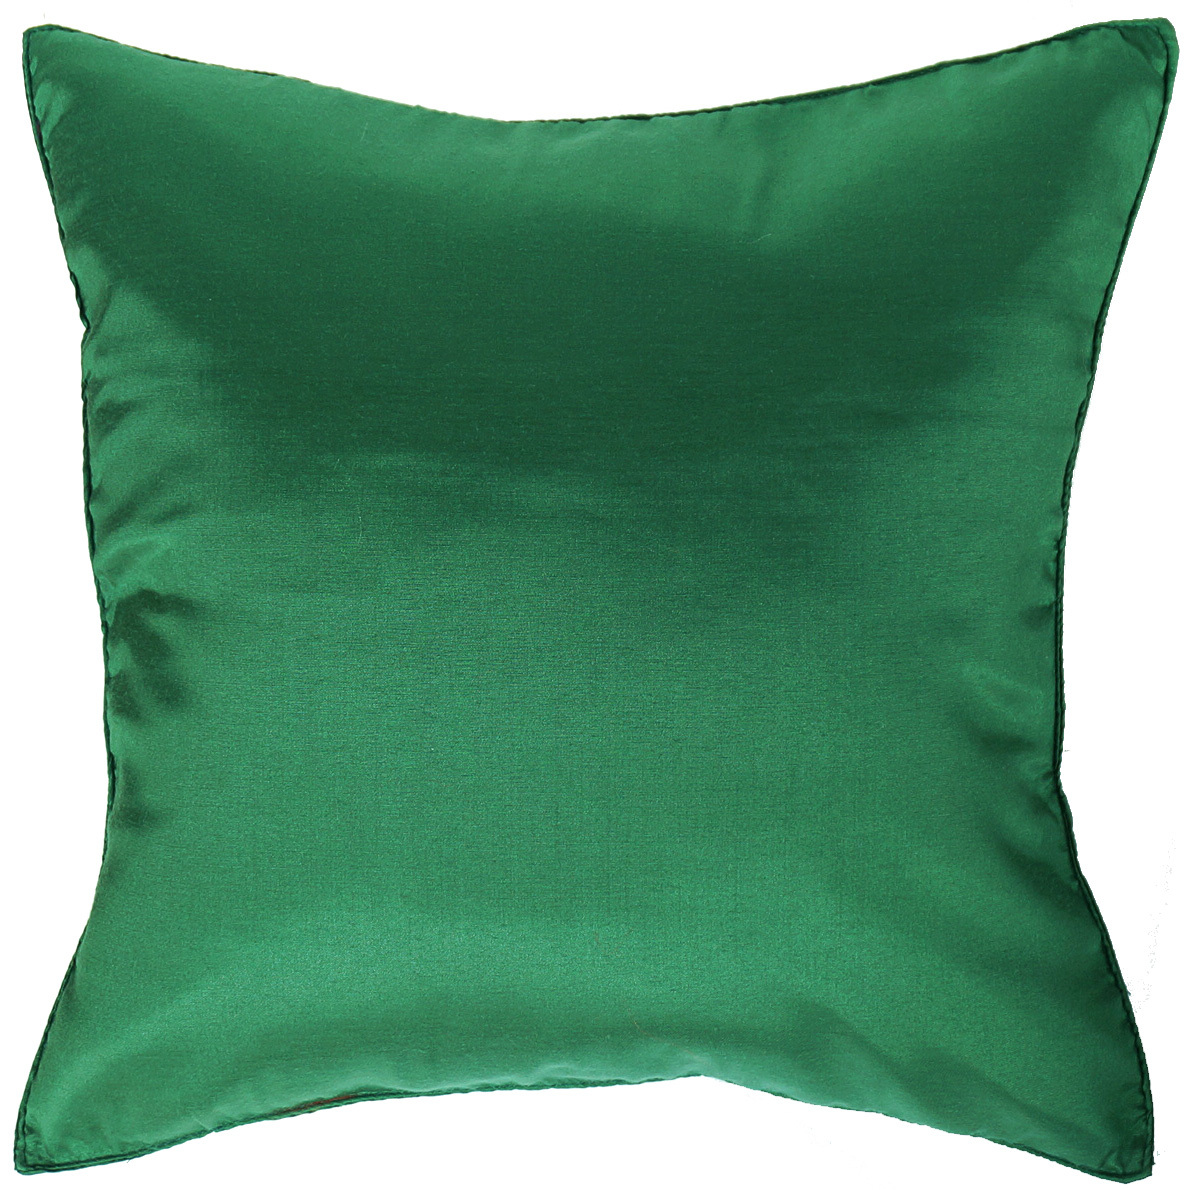 Decorative Pillows For Bed Green : 2 CHRISTMAS GREEN Silk THROW Decorative PILLOW COVERS for Sofa Bed Couch 16x16 - Pillows